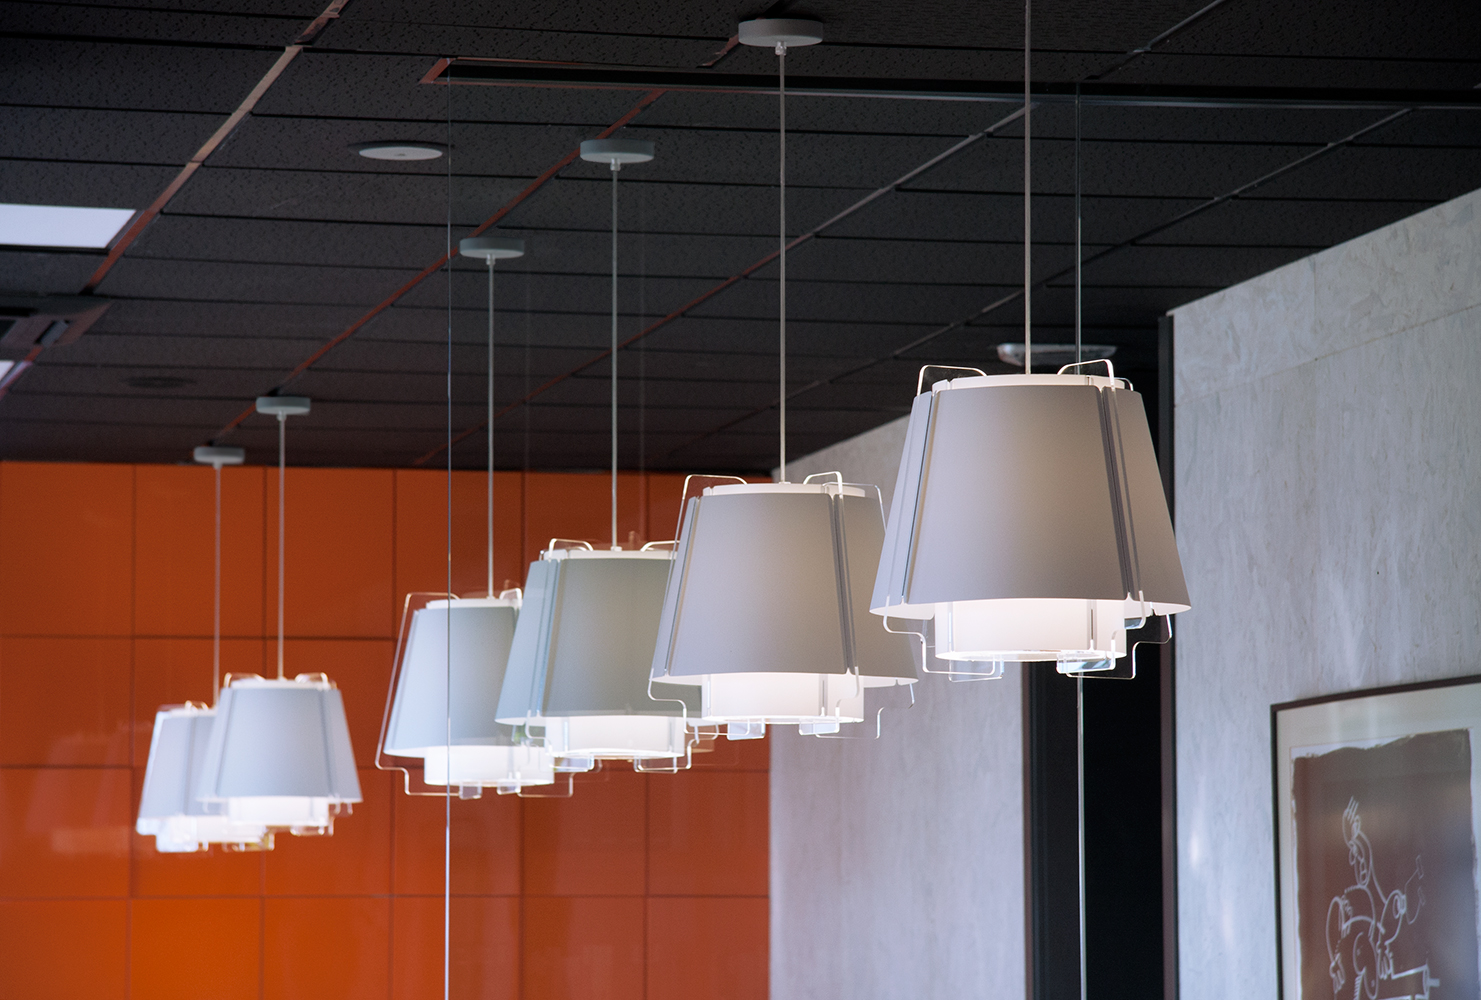 ZONA 43 in a row are extremely versatile lamps that provide a wide range of architectural lighting solutions.